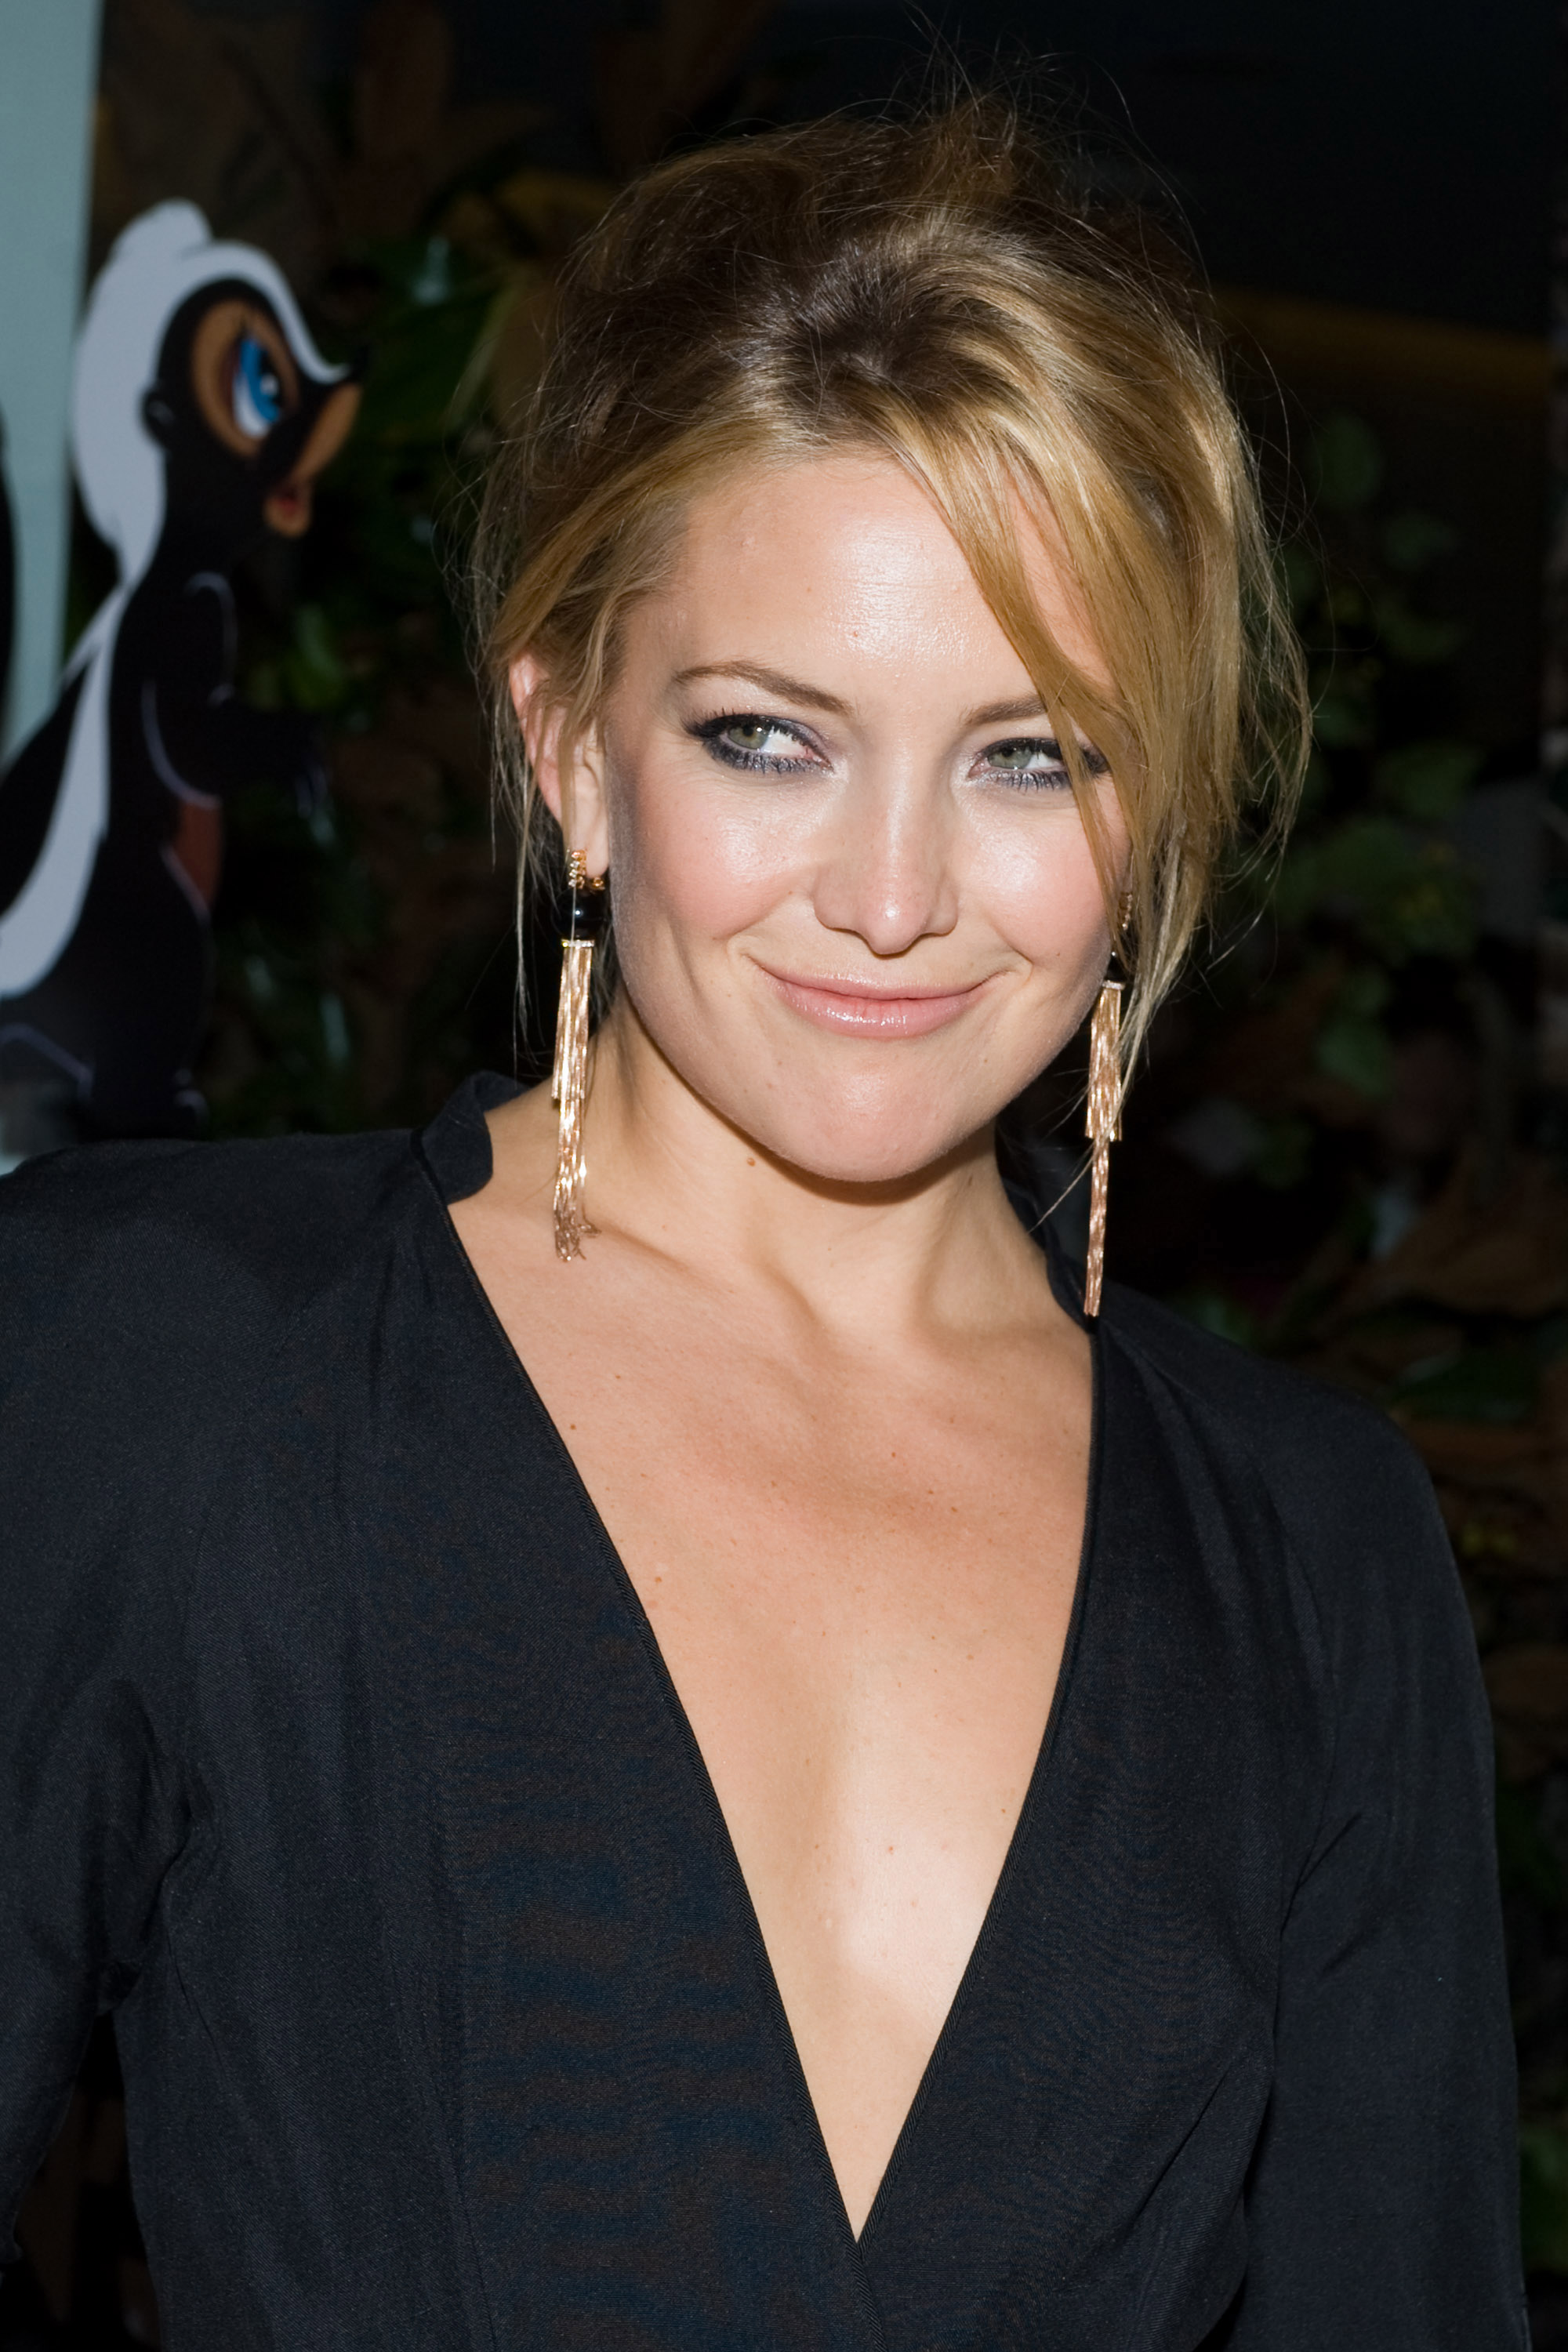 Actress Kate Hudson attends Fashion's Night Out at the Stella McCartney shop in New York, New York on Thursday.